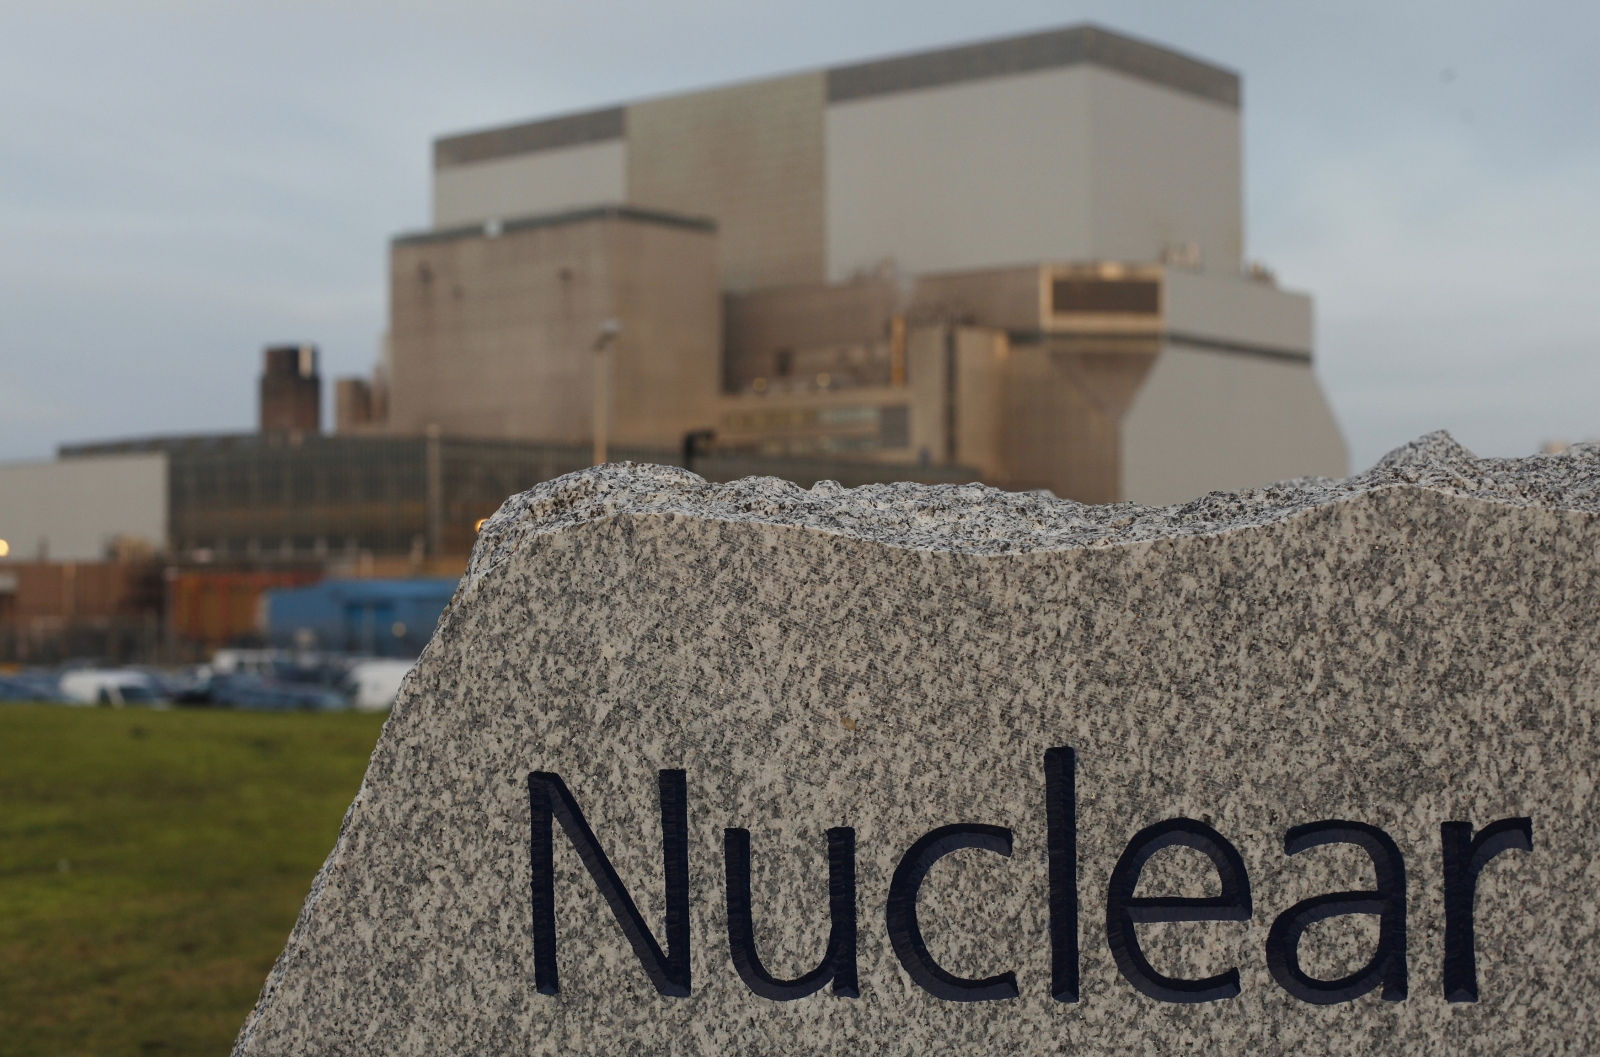 GE's Steam Power Systems to deliver $1.9bn order for EDF Energy's Hinkley Point C nuclear power plant